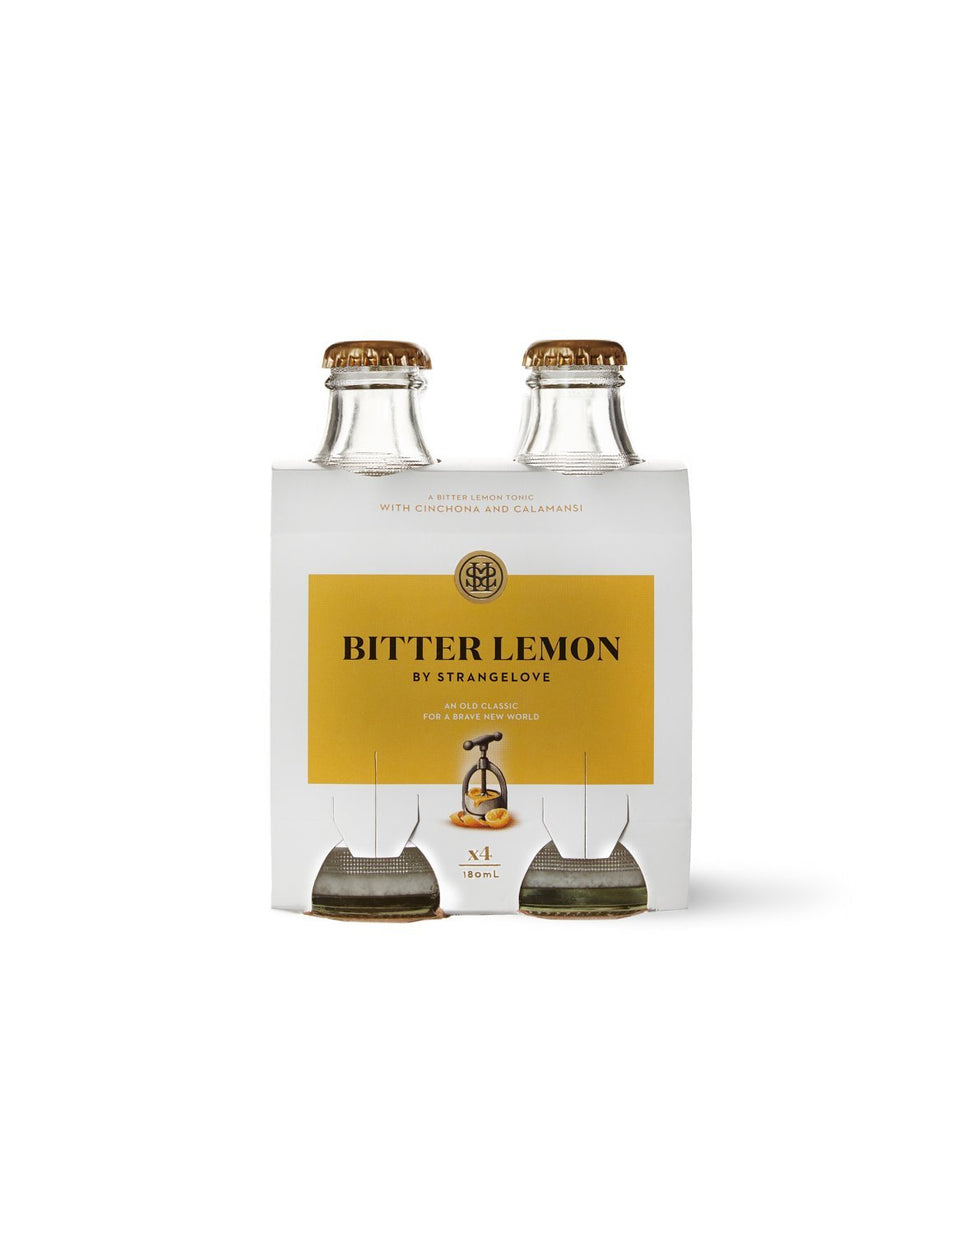 StrangeLove Bitter Lemon 180mL - Craftzero